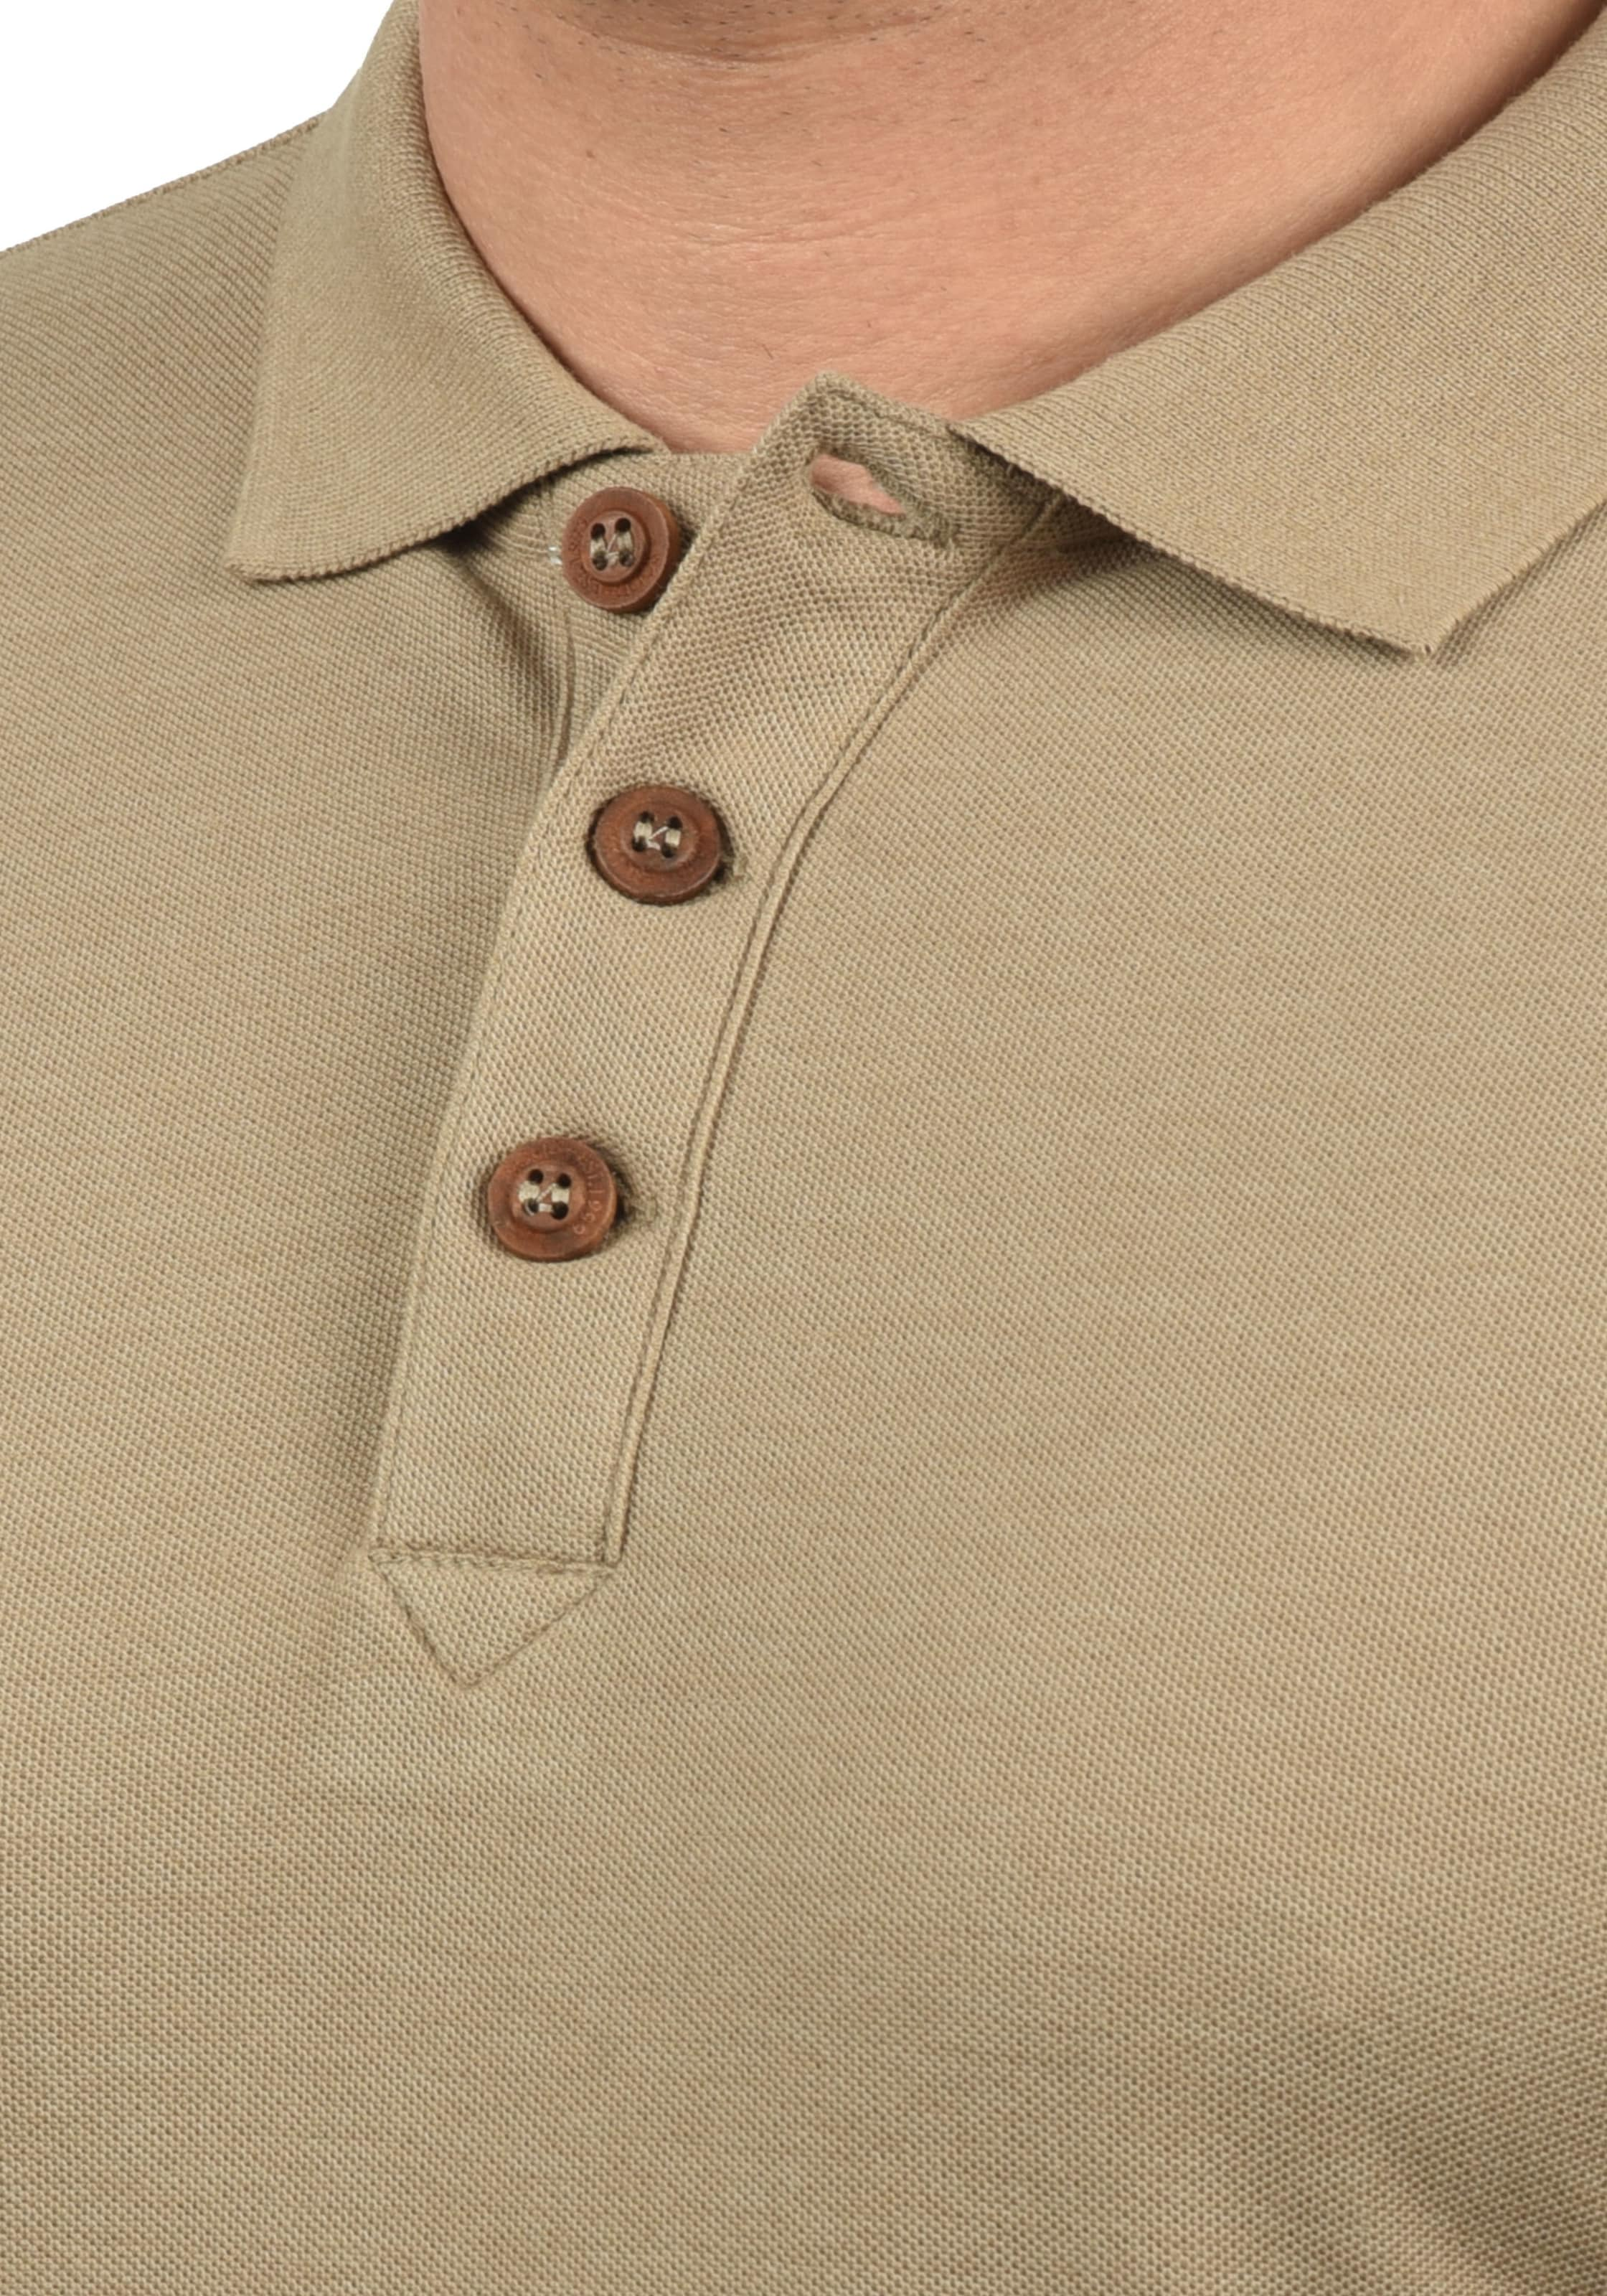 solid In Poloshirt solid In Sand Poloshirt Sand solid Poloshirt rdCxBoeW